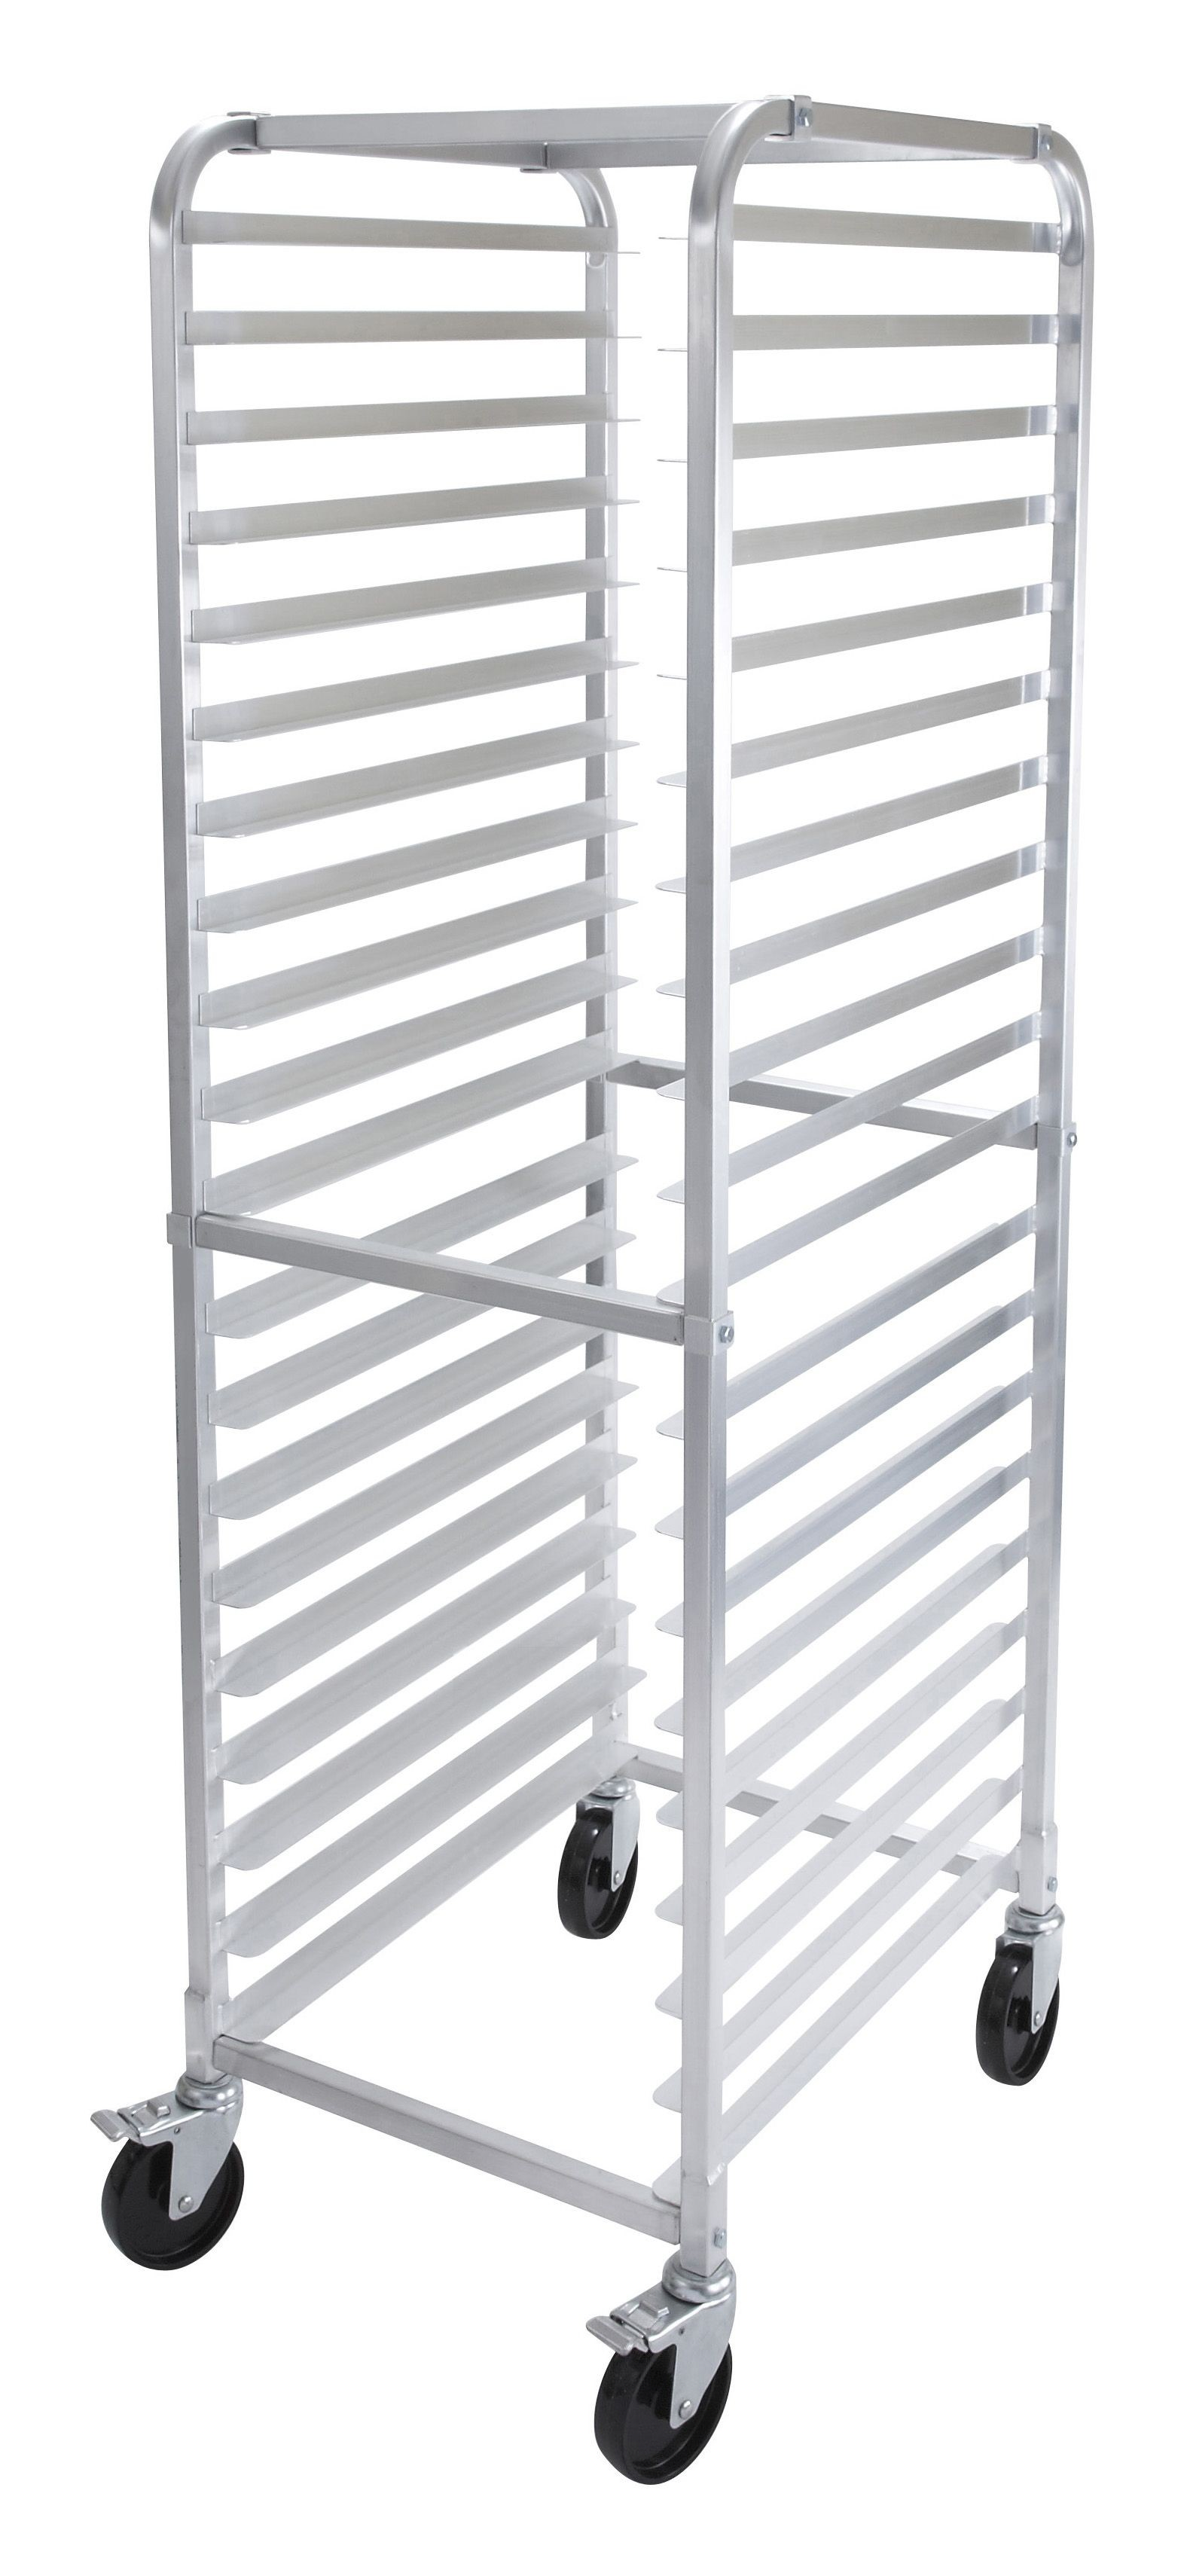 20 Tier Aluminum Rack W/Brake (NSF)